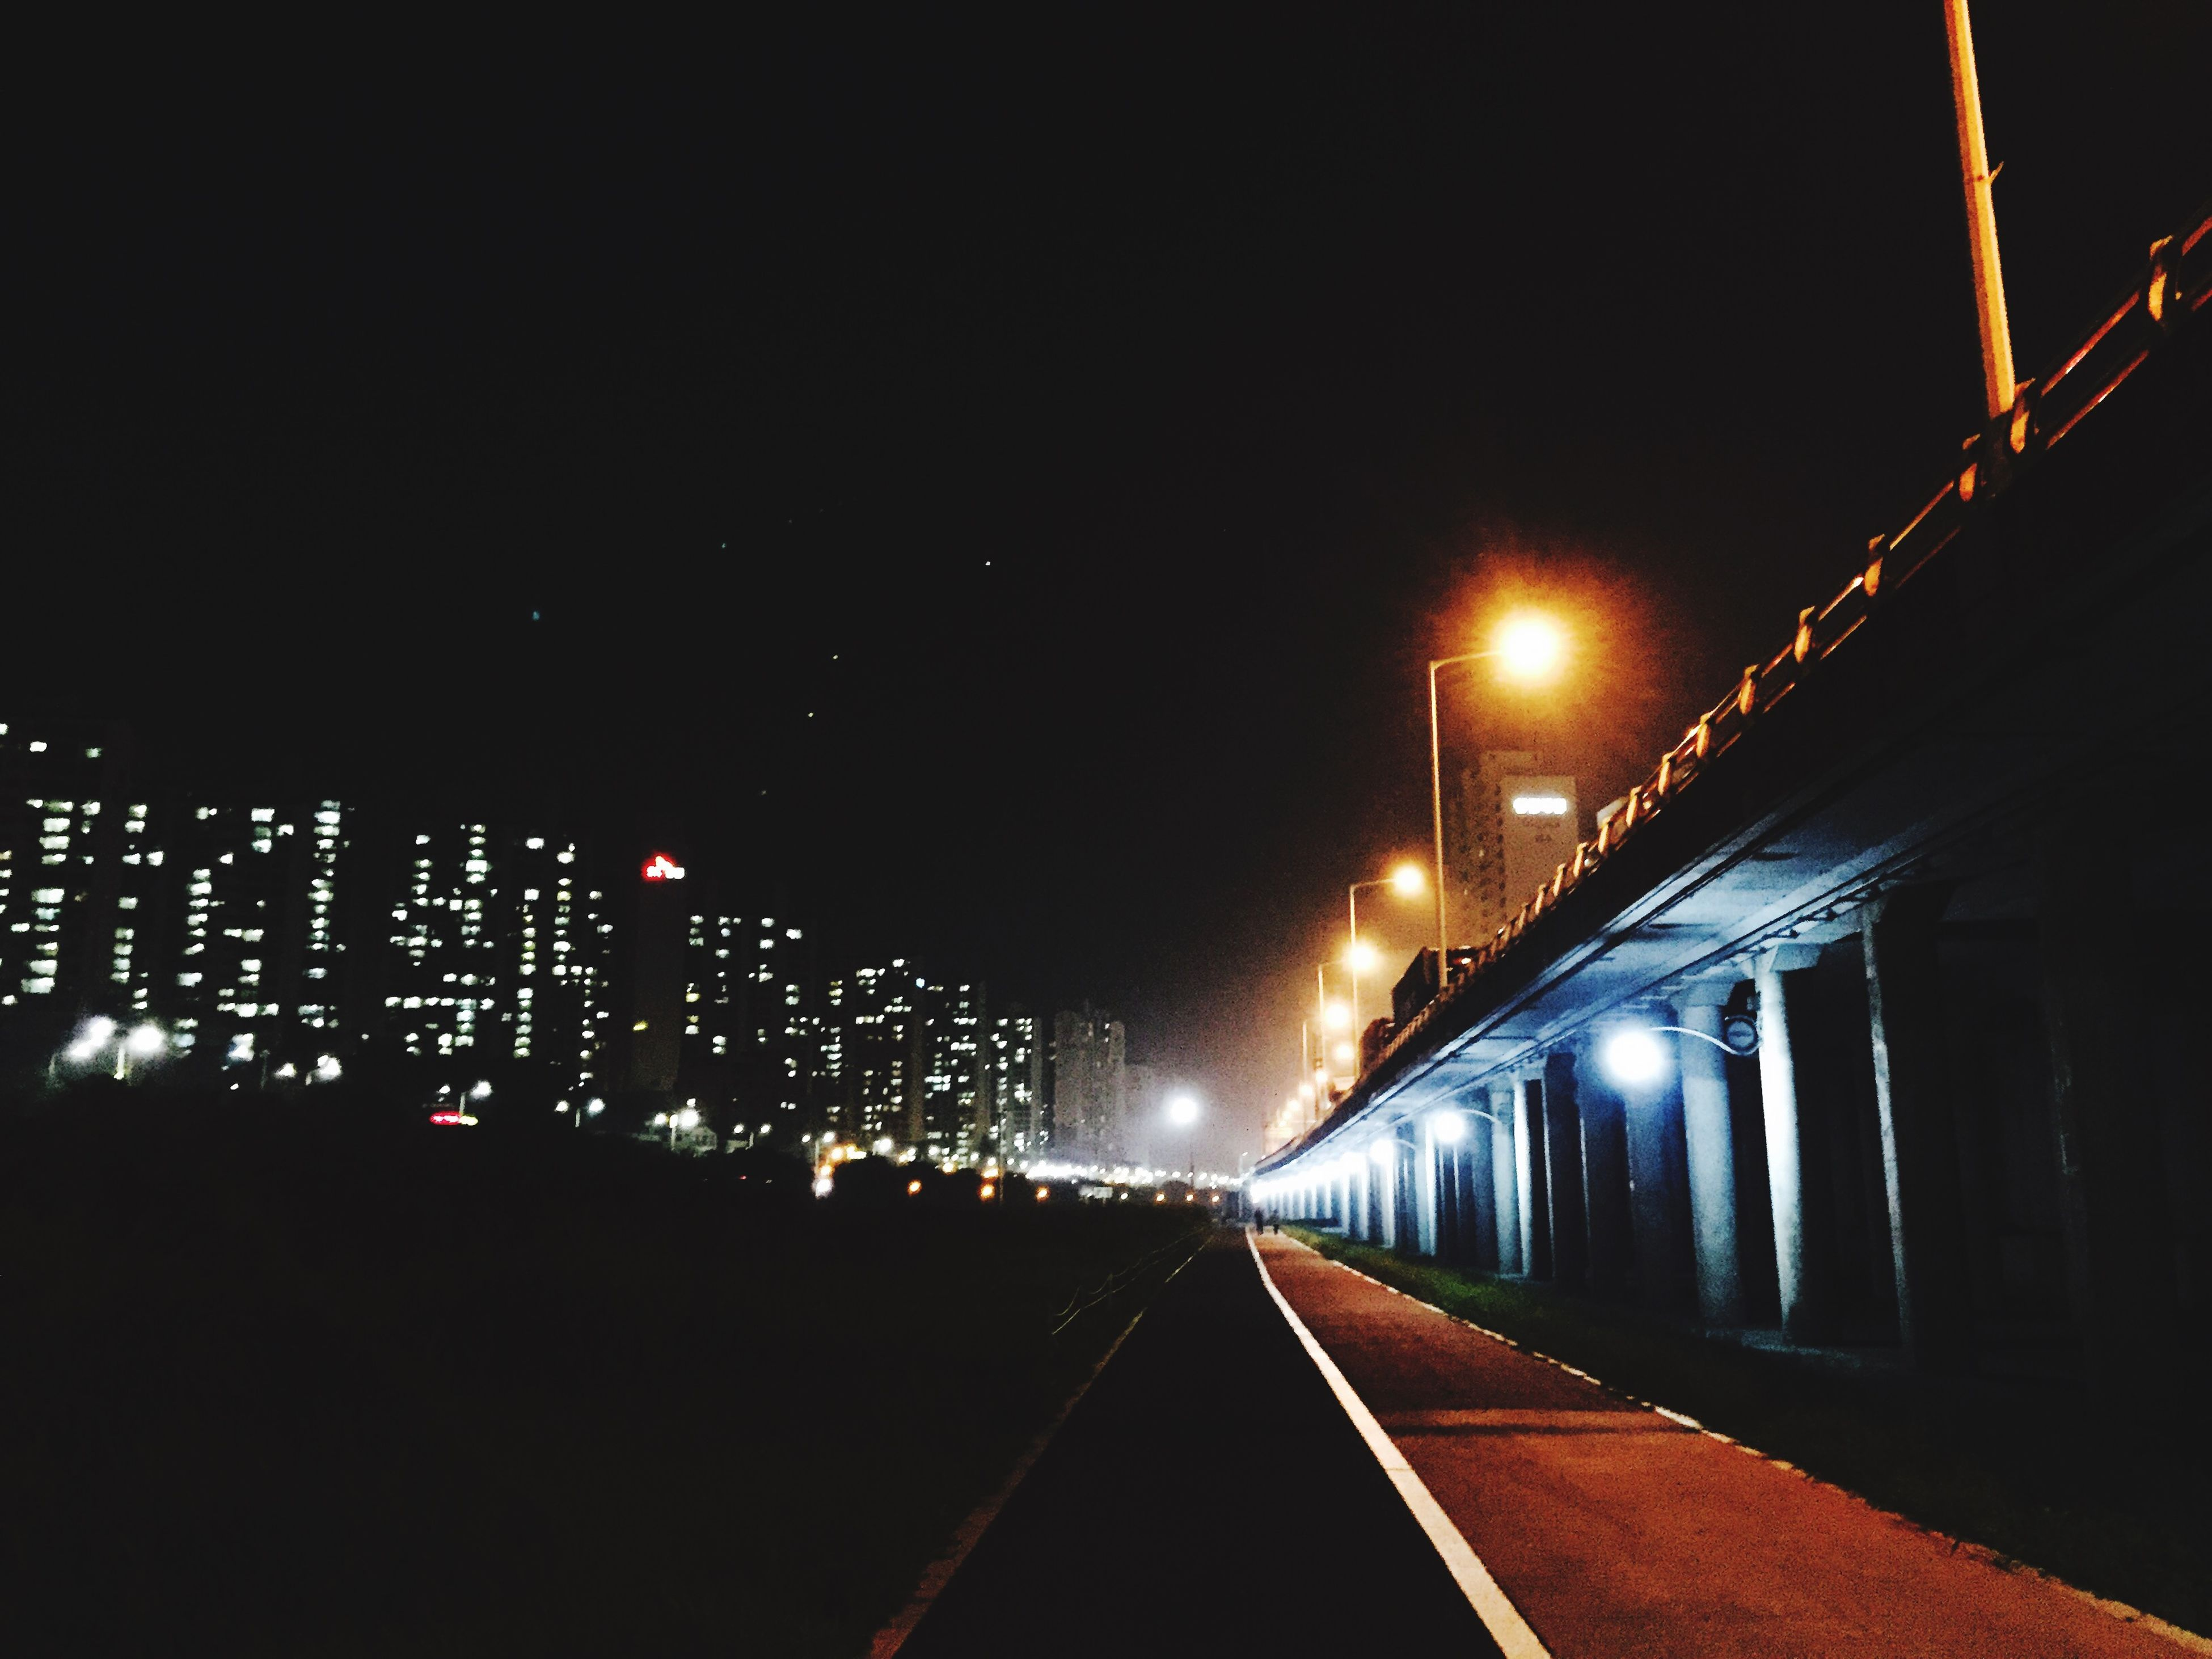 illuminated, night, the way forward, transportation, diminishing perspective, architecture, built structure, vanishing point, railroad track, lighting equipment, building exterior, copy space, city, street light, clear sky, dark, long, sky, rail transportation, tunnel